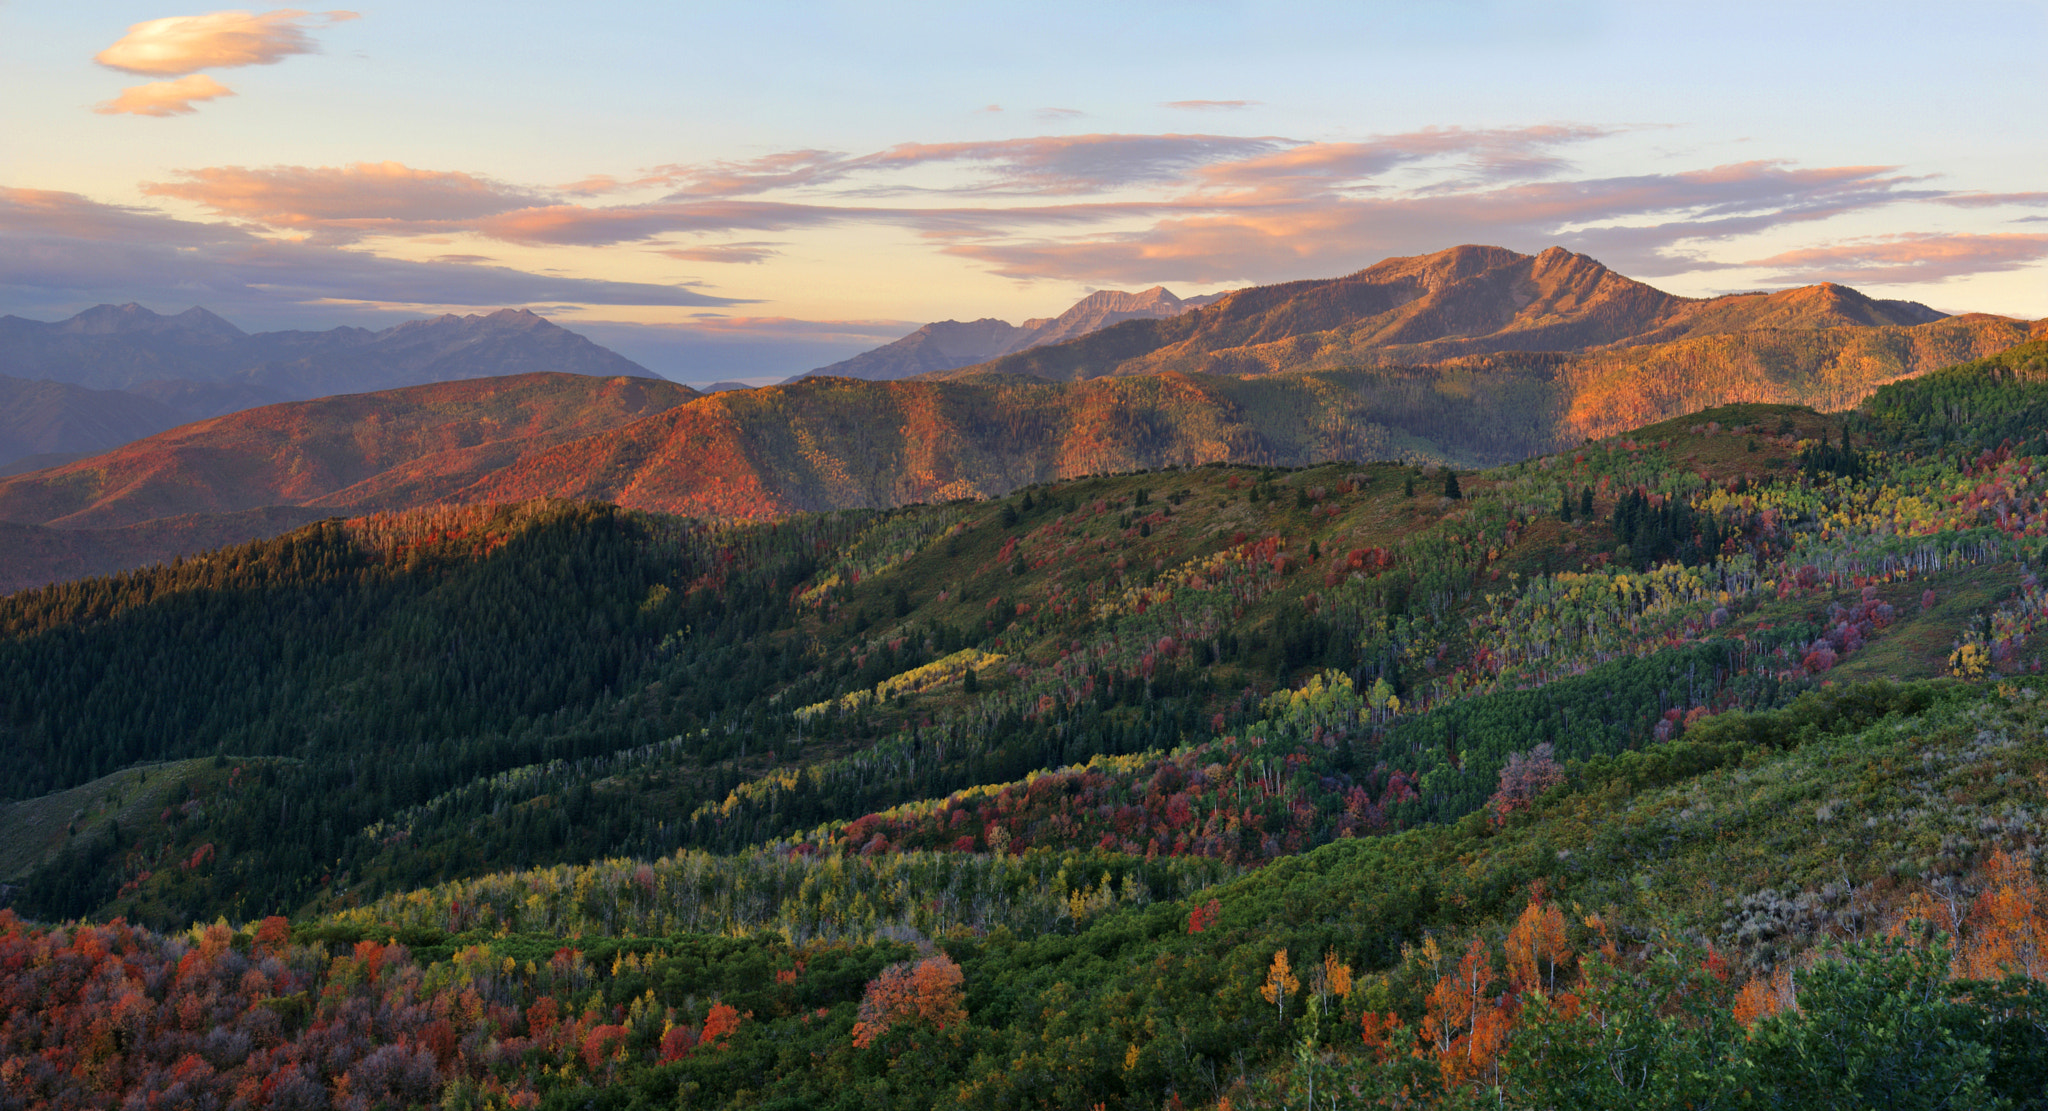 Photograph Wasatch Fall Morning by Christian Madsen on 500px